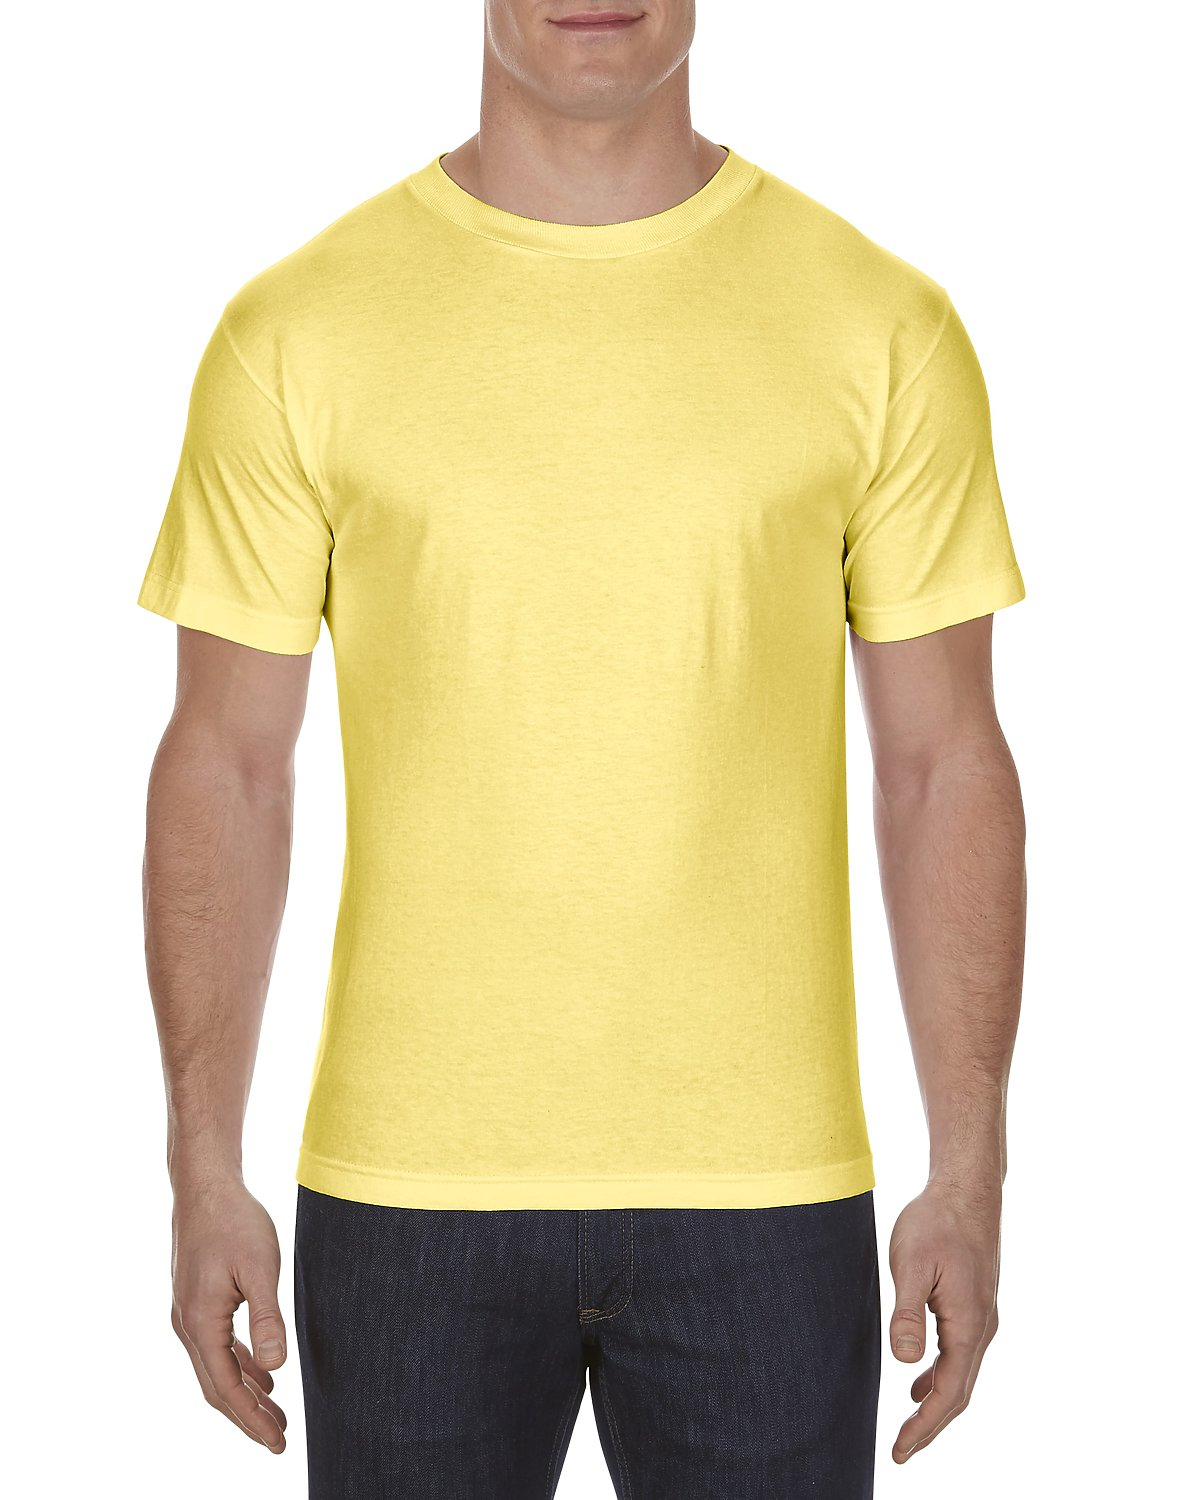 Alstyle 1301 AAA Short Sleeve T-Shirt - Colours